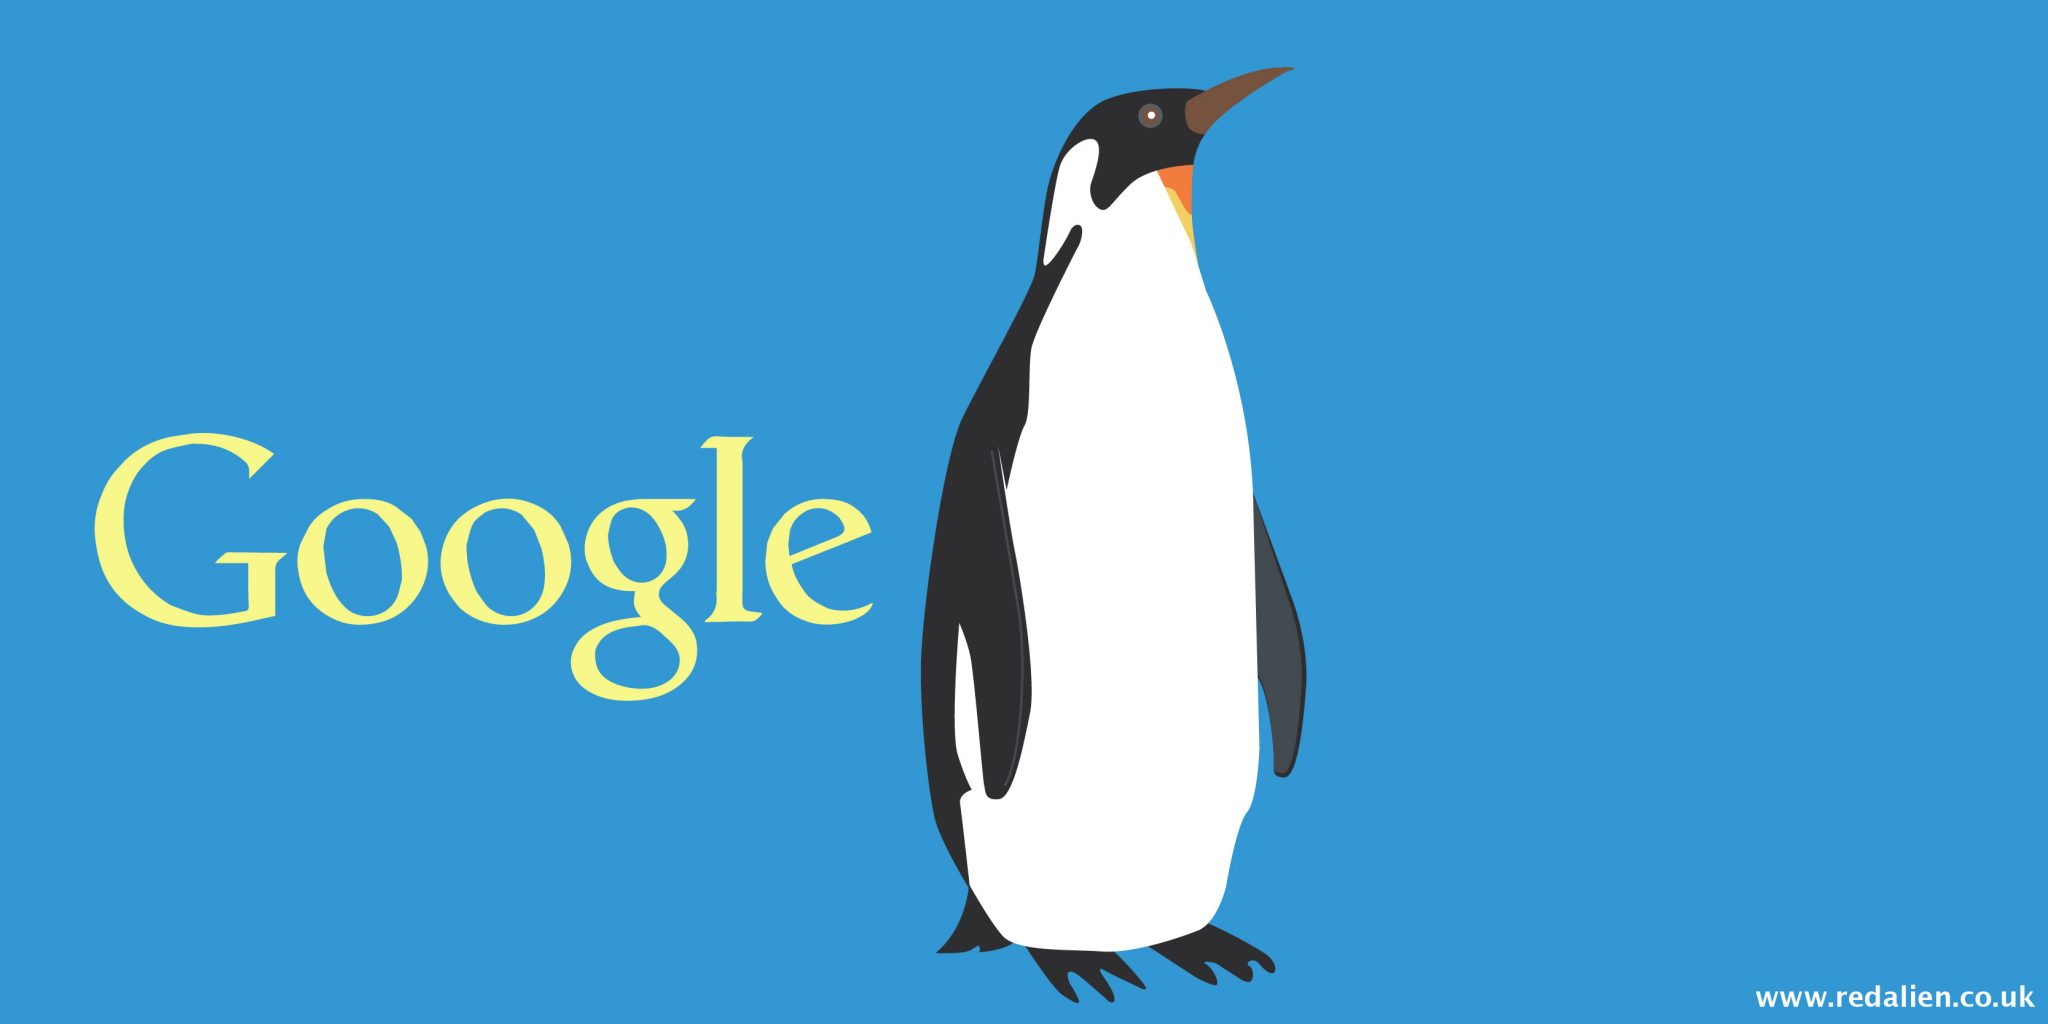 All you need to know about the latest Google algorithm updates